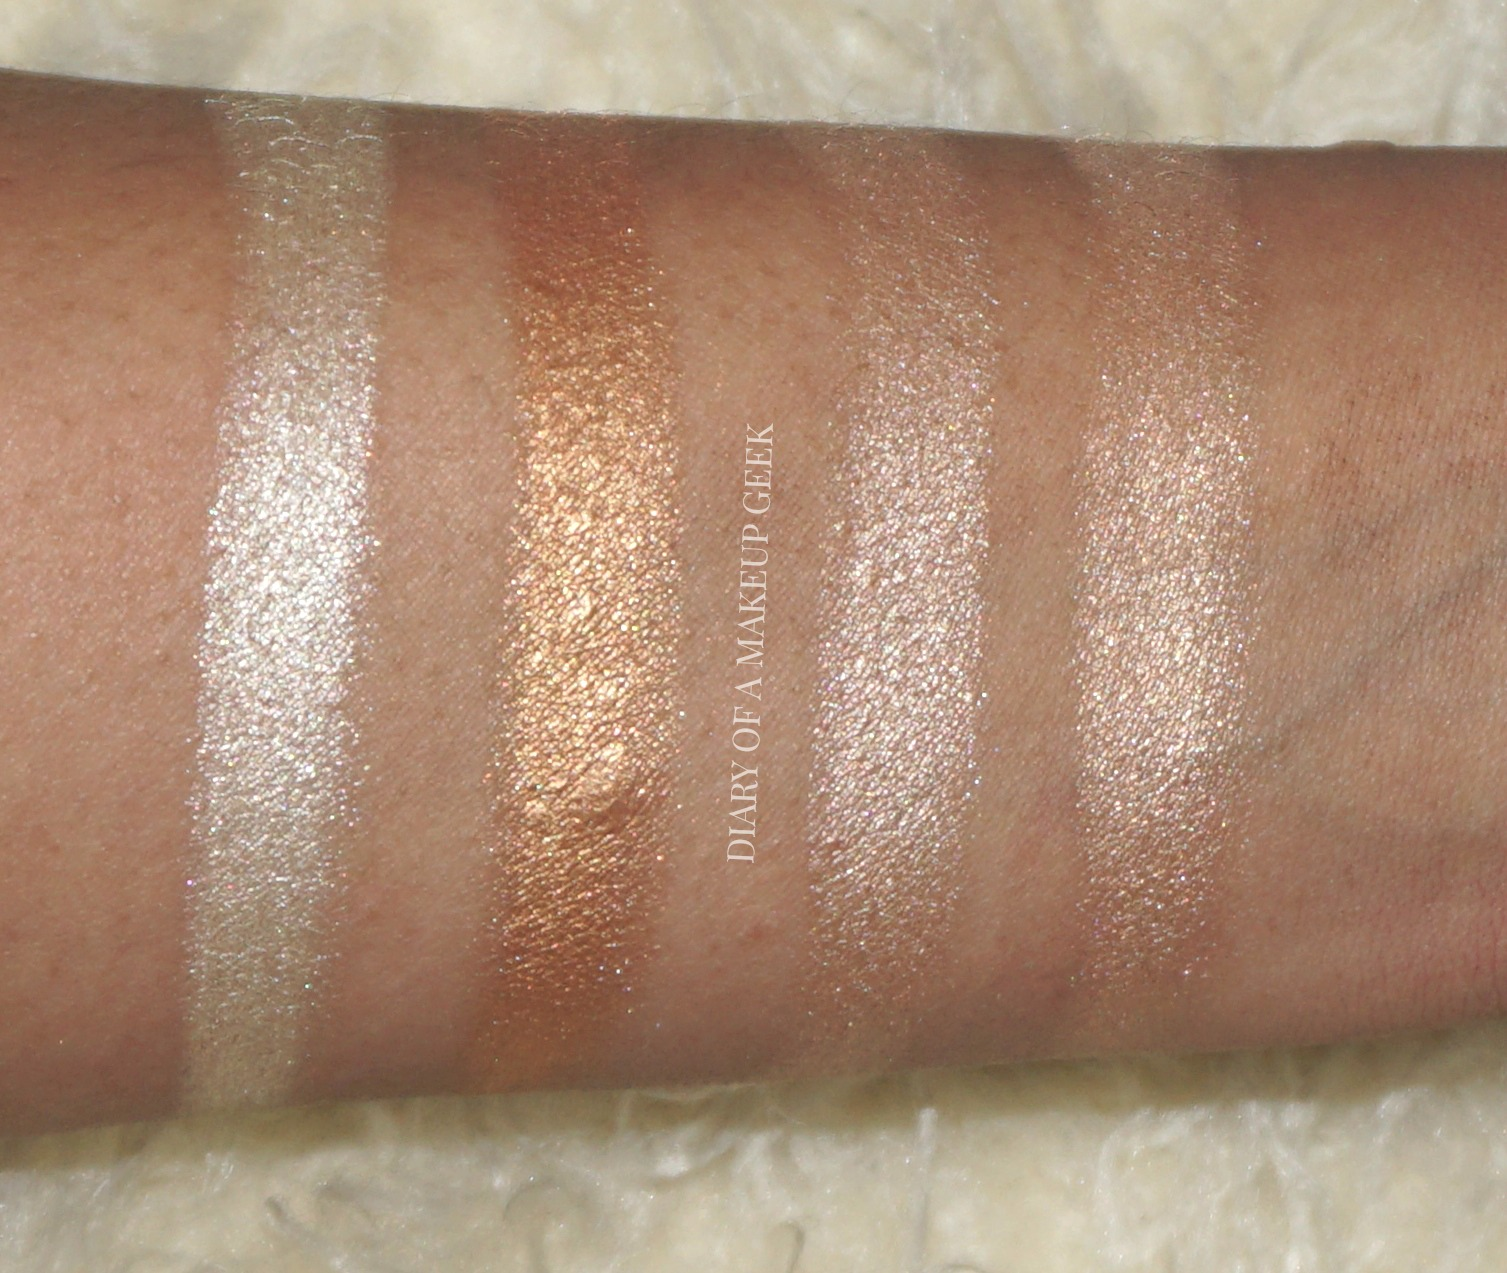 Extra Dimension Skinfinish by MAC #13